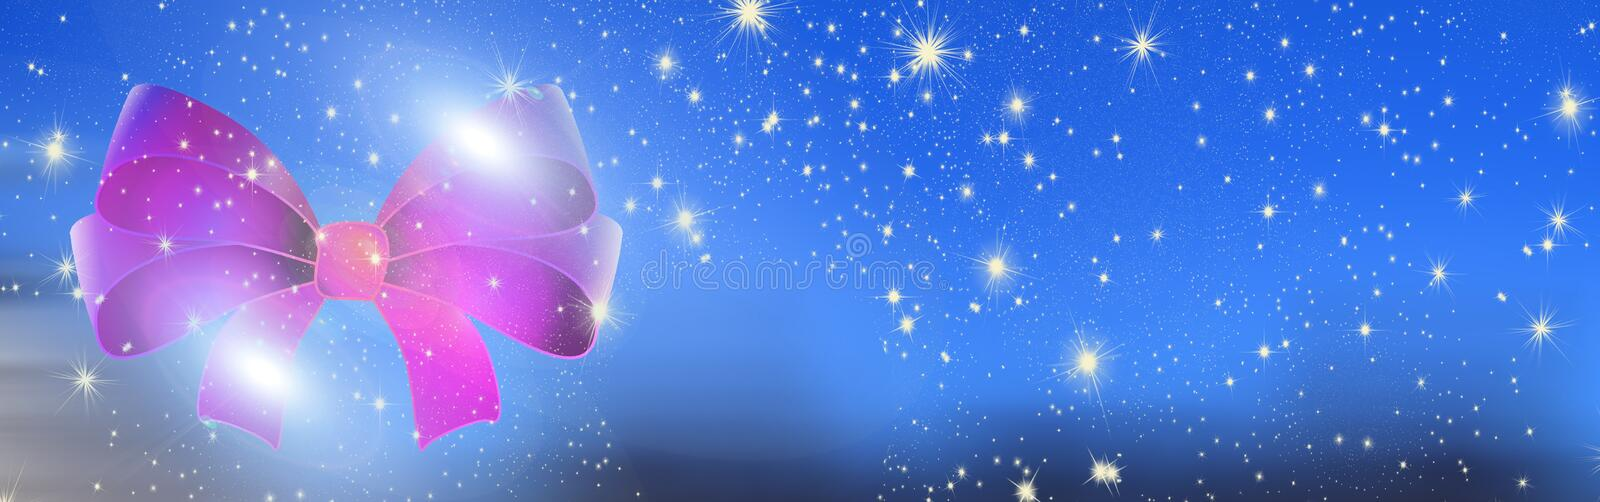 Christmas wishes, bow with stars, background royalty free stock photo